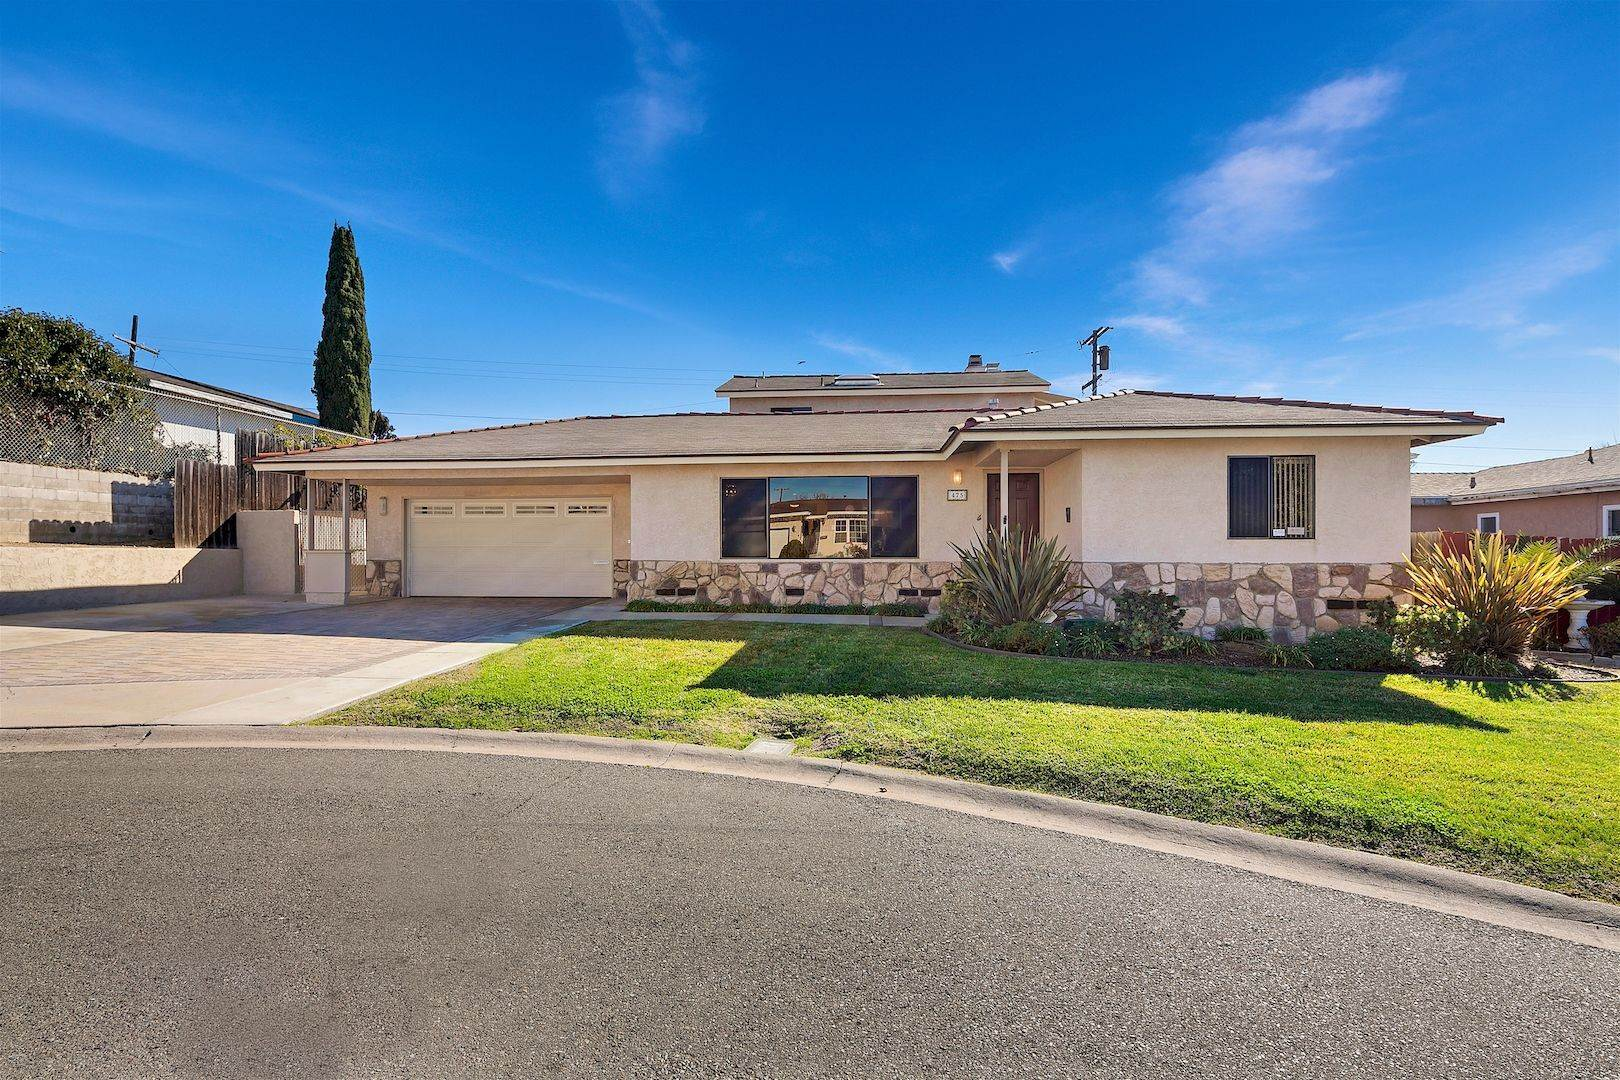 Single Family Homes for Sale at Mint Condition 475 Welton Street Chula Vista, California 91911 United States